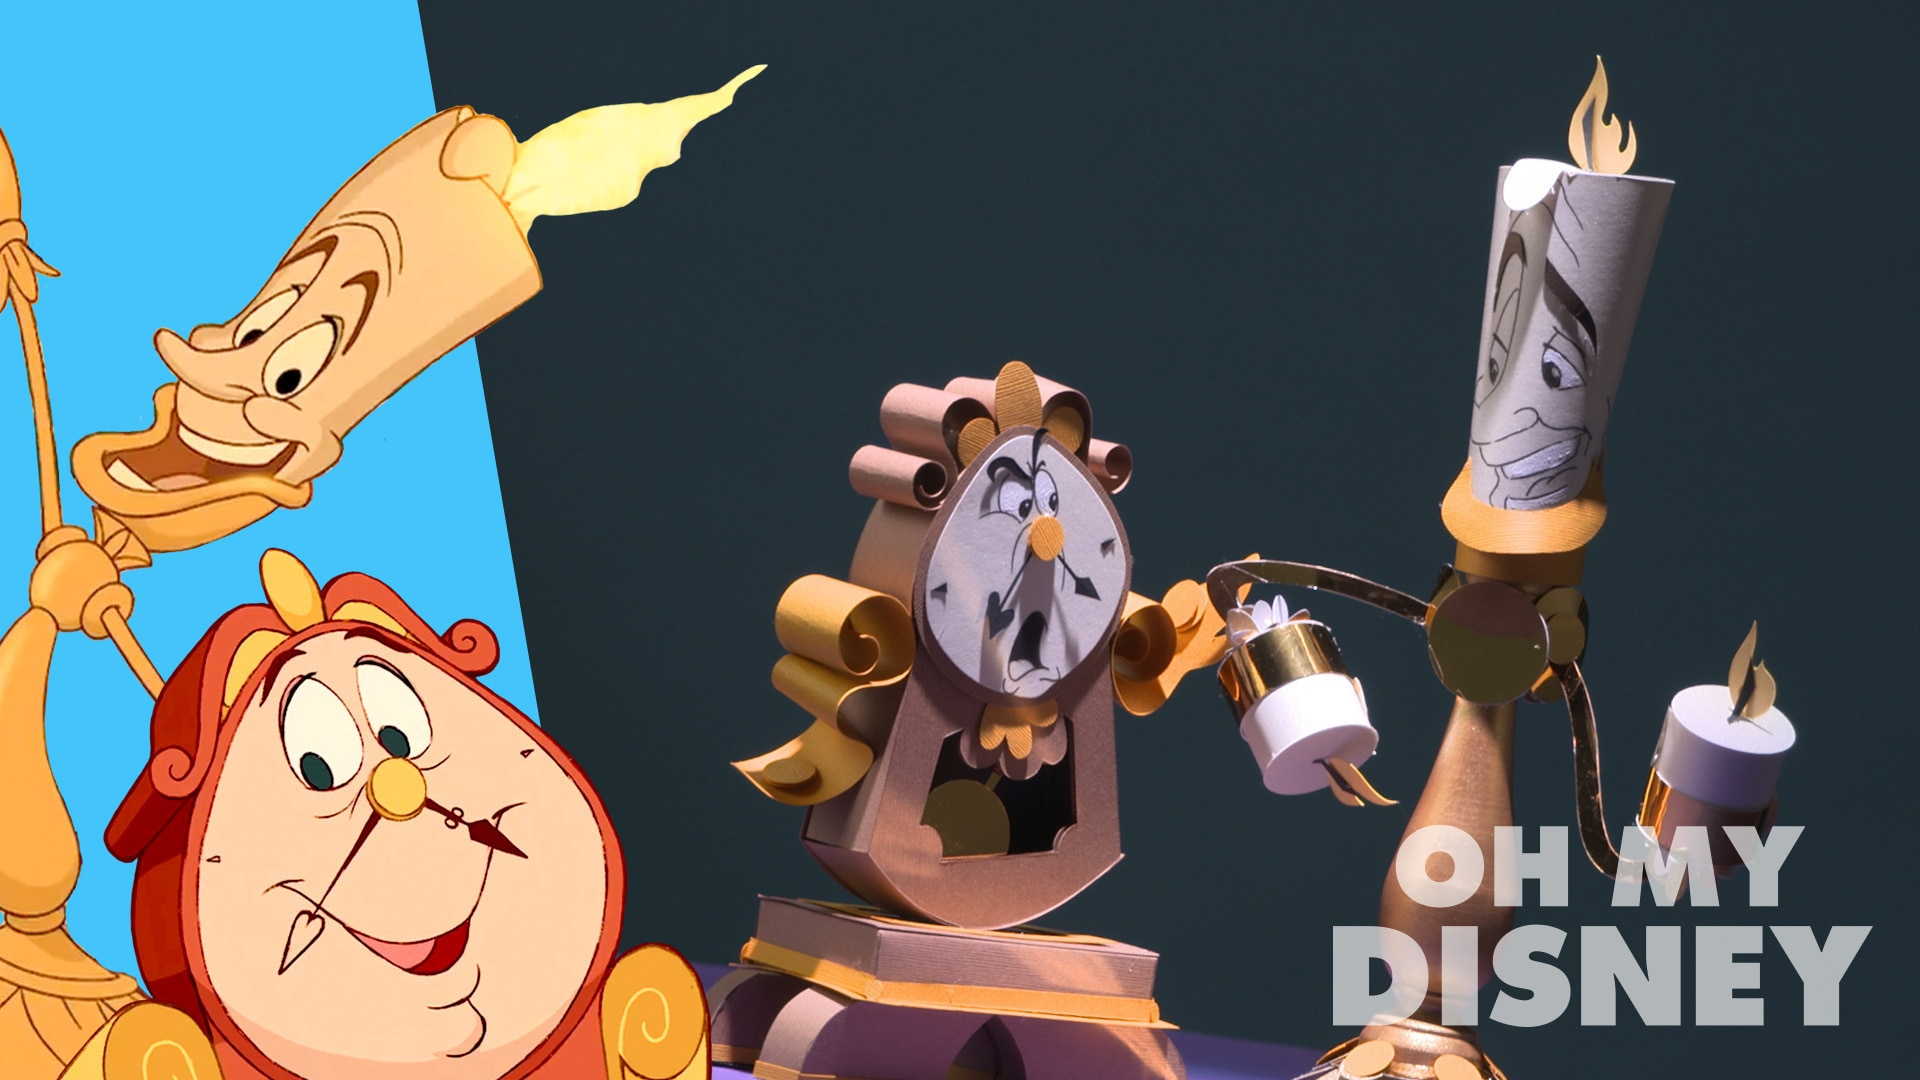 Beauty and the Beast's Lumiere and Cogsworth Paper Sculpture | Sketchbook by Oh My Disney